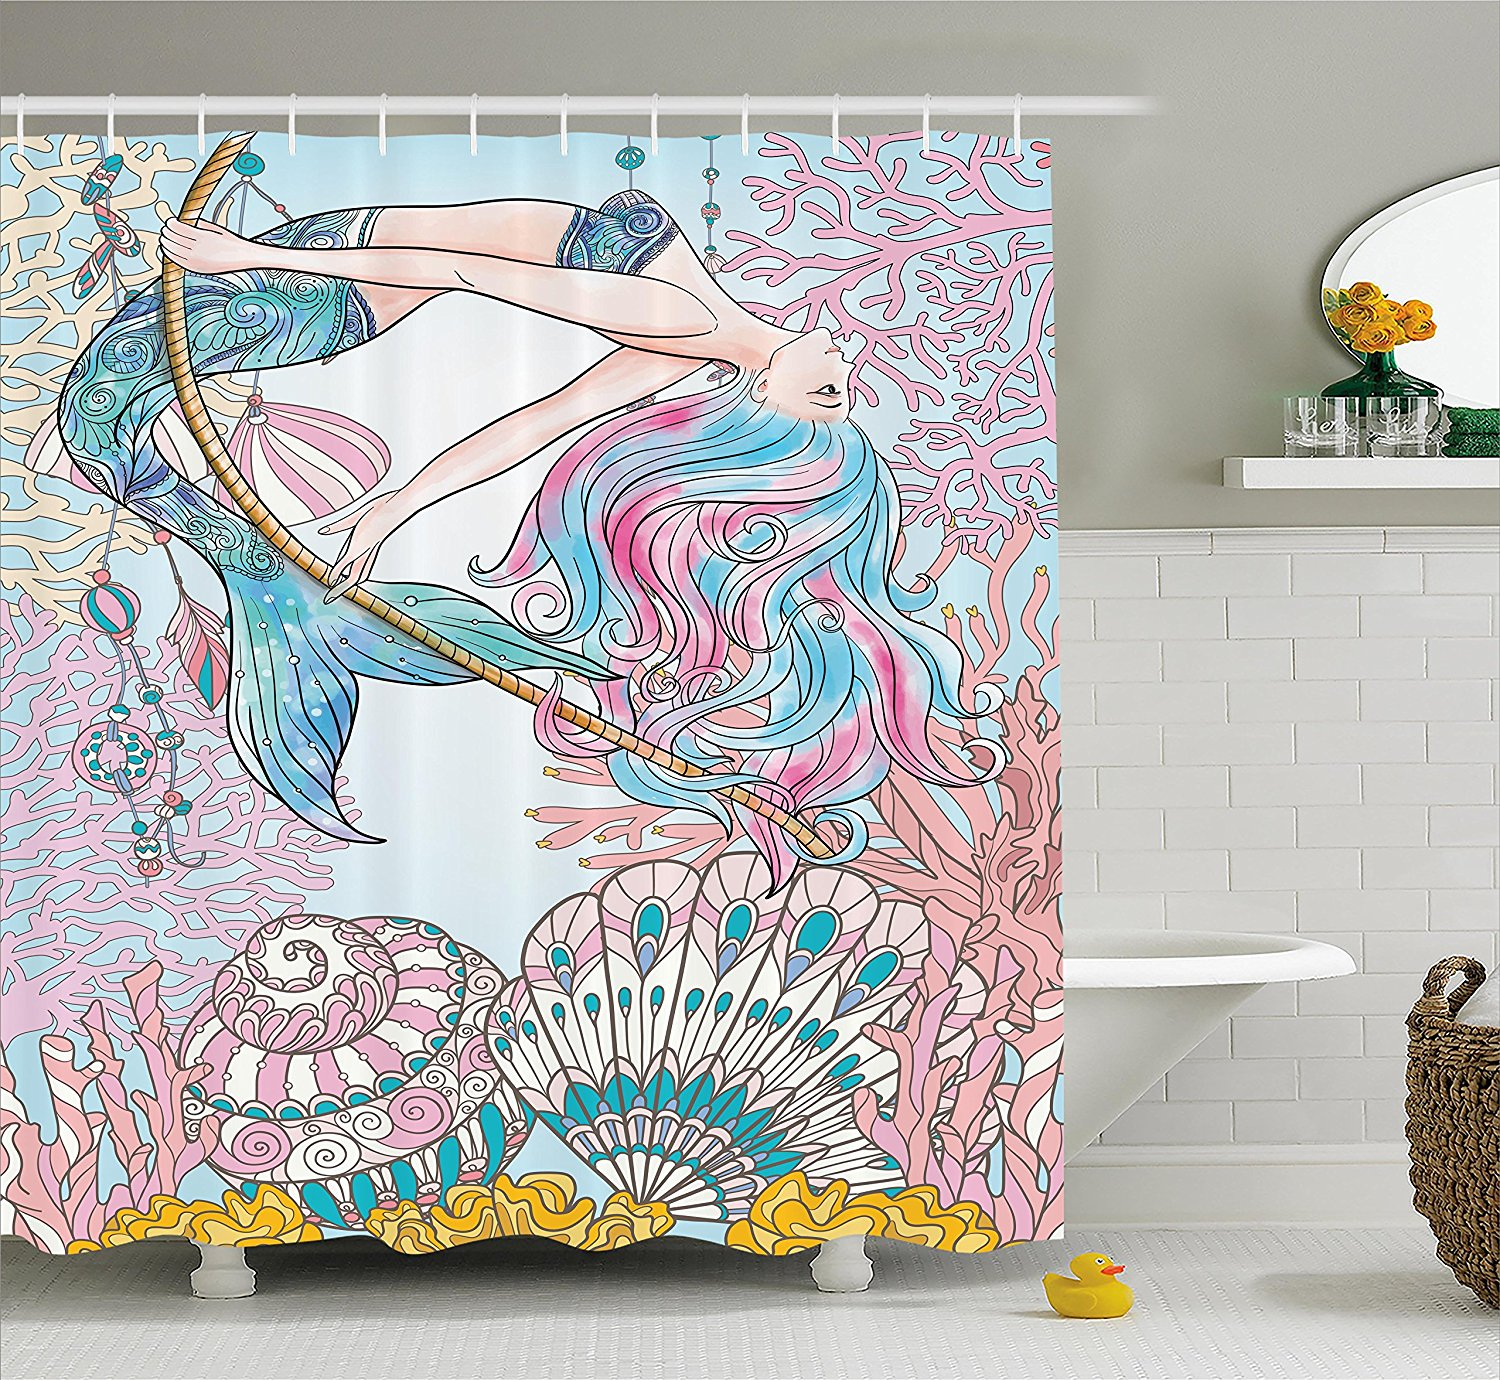 Mermaid shower curtains - Memory Home Mermaid Shower Curtain Fabric Waterproof Mildewproof Polyester Bathroom Decor Set With Hooks China